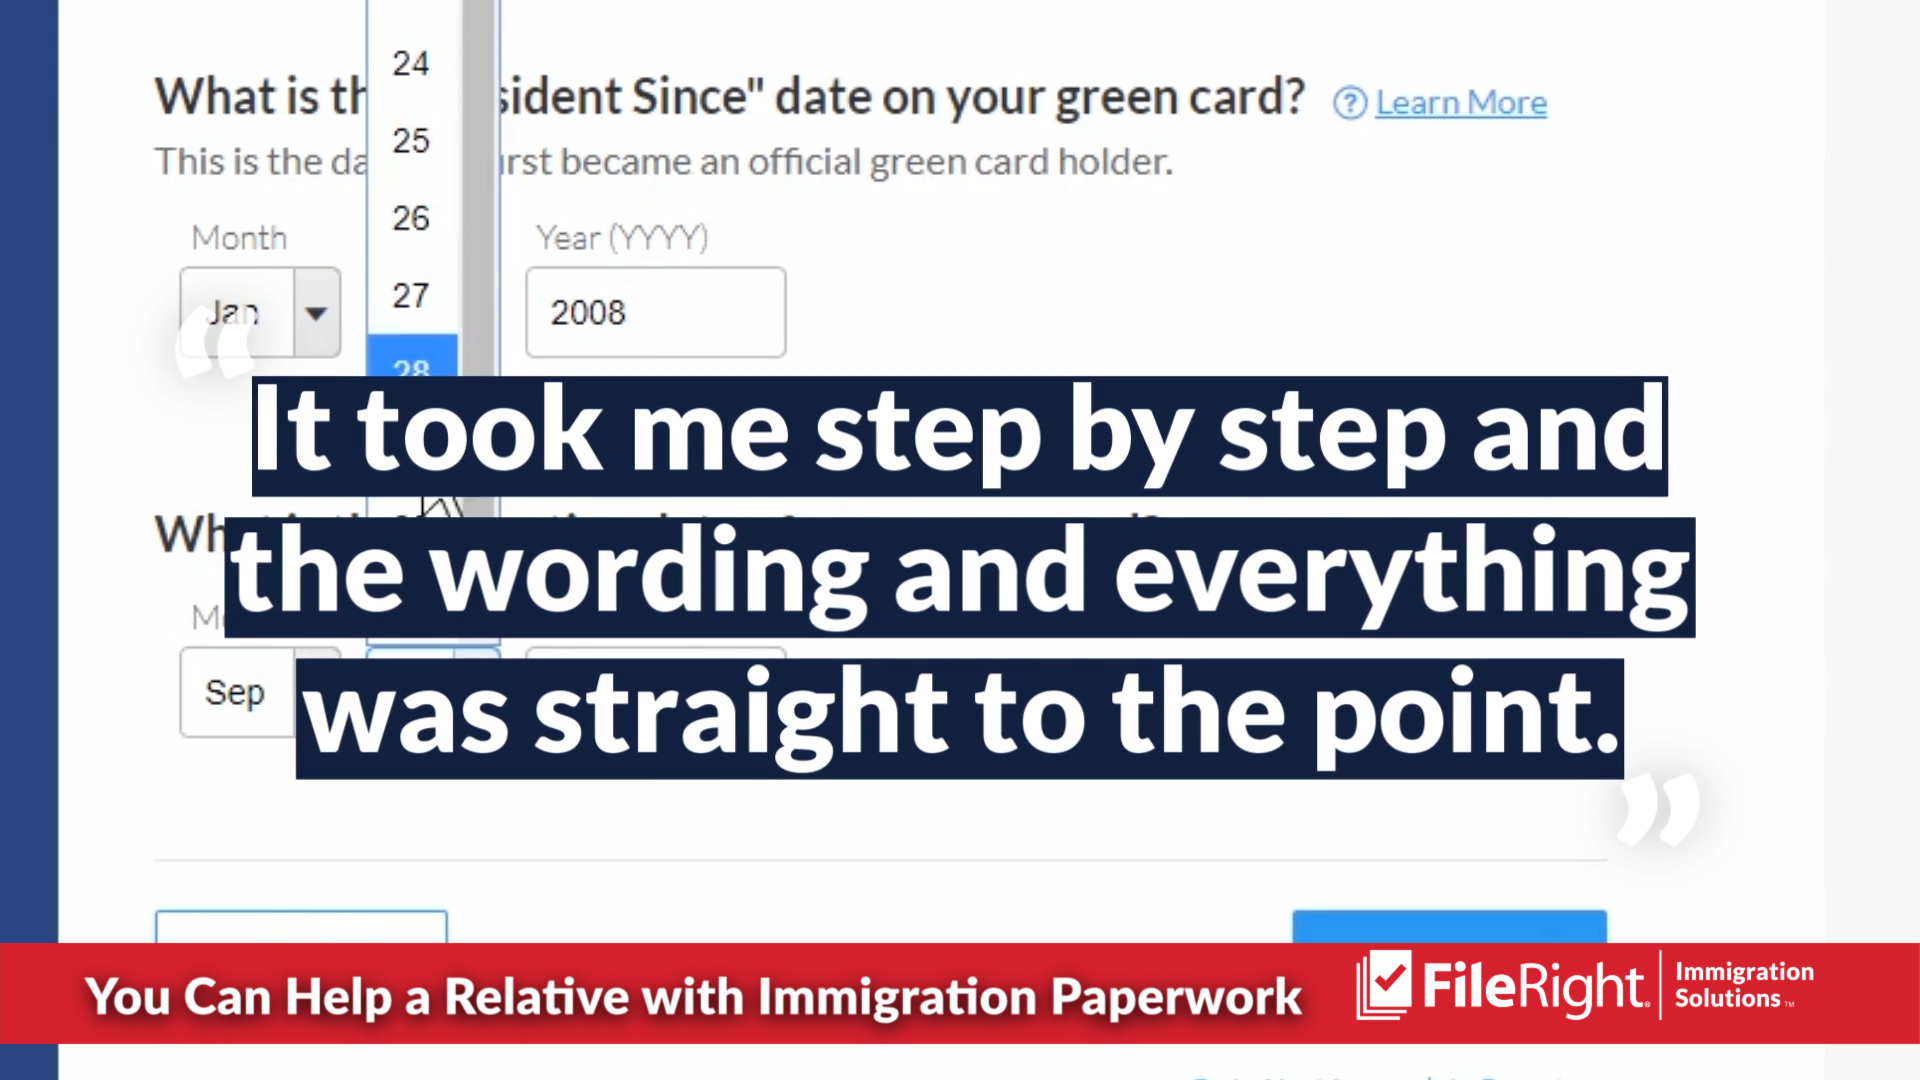 If you'd like to help a relative with immigration paperwork consider FileRight.